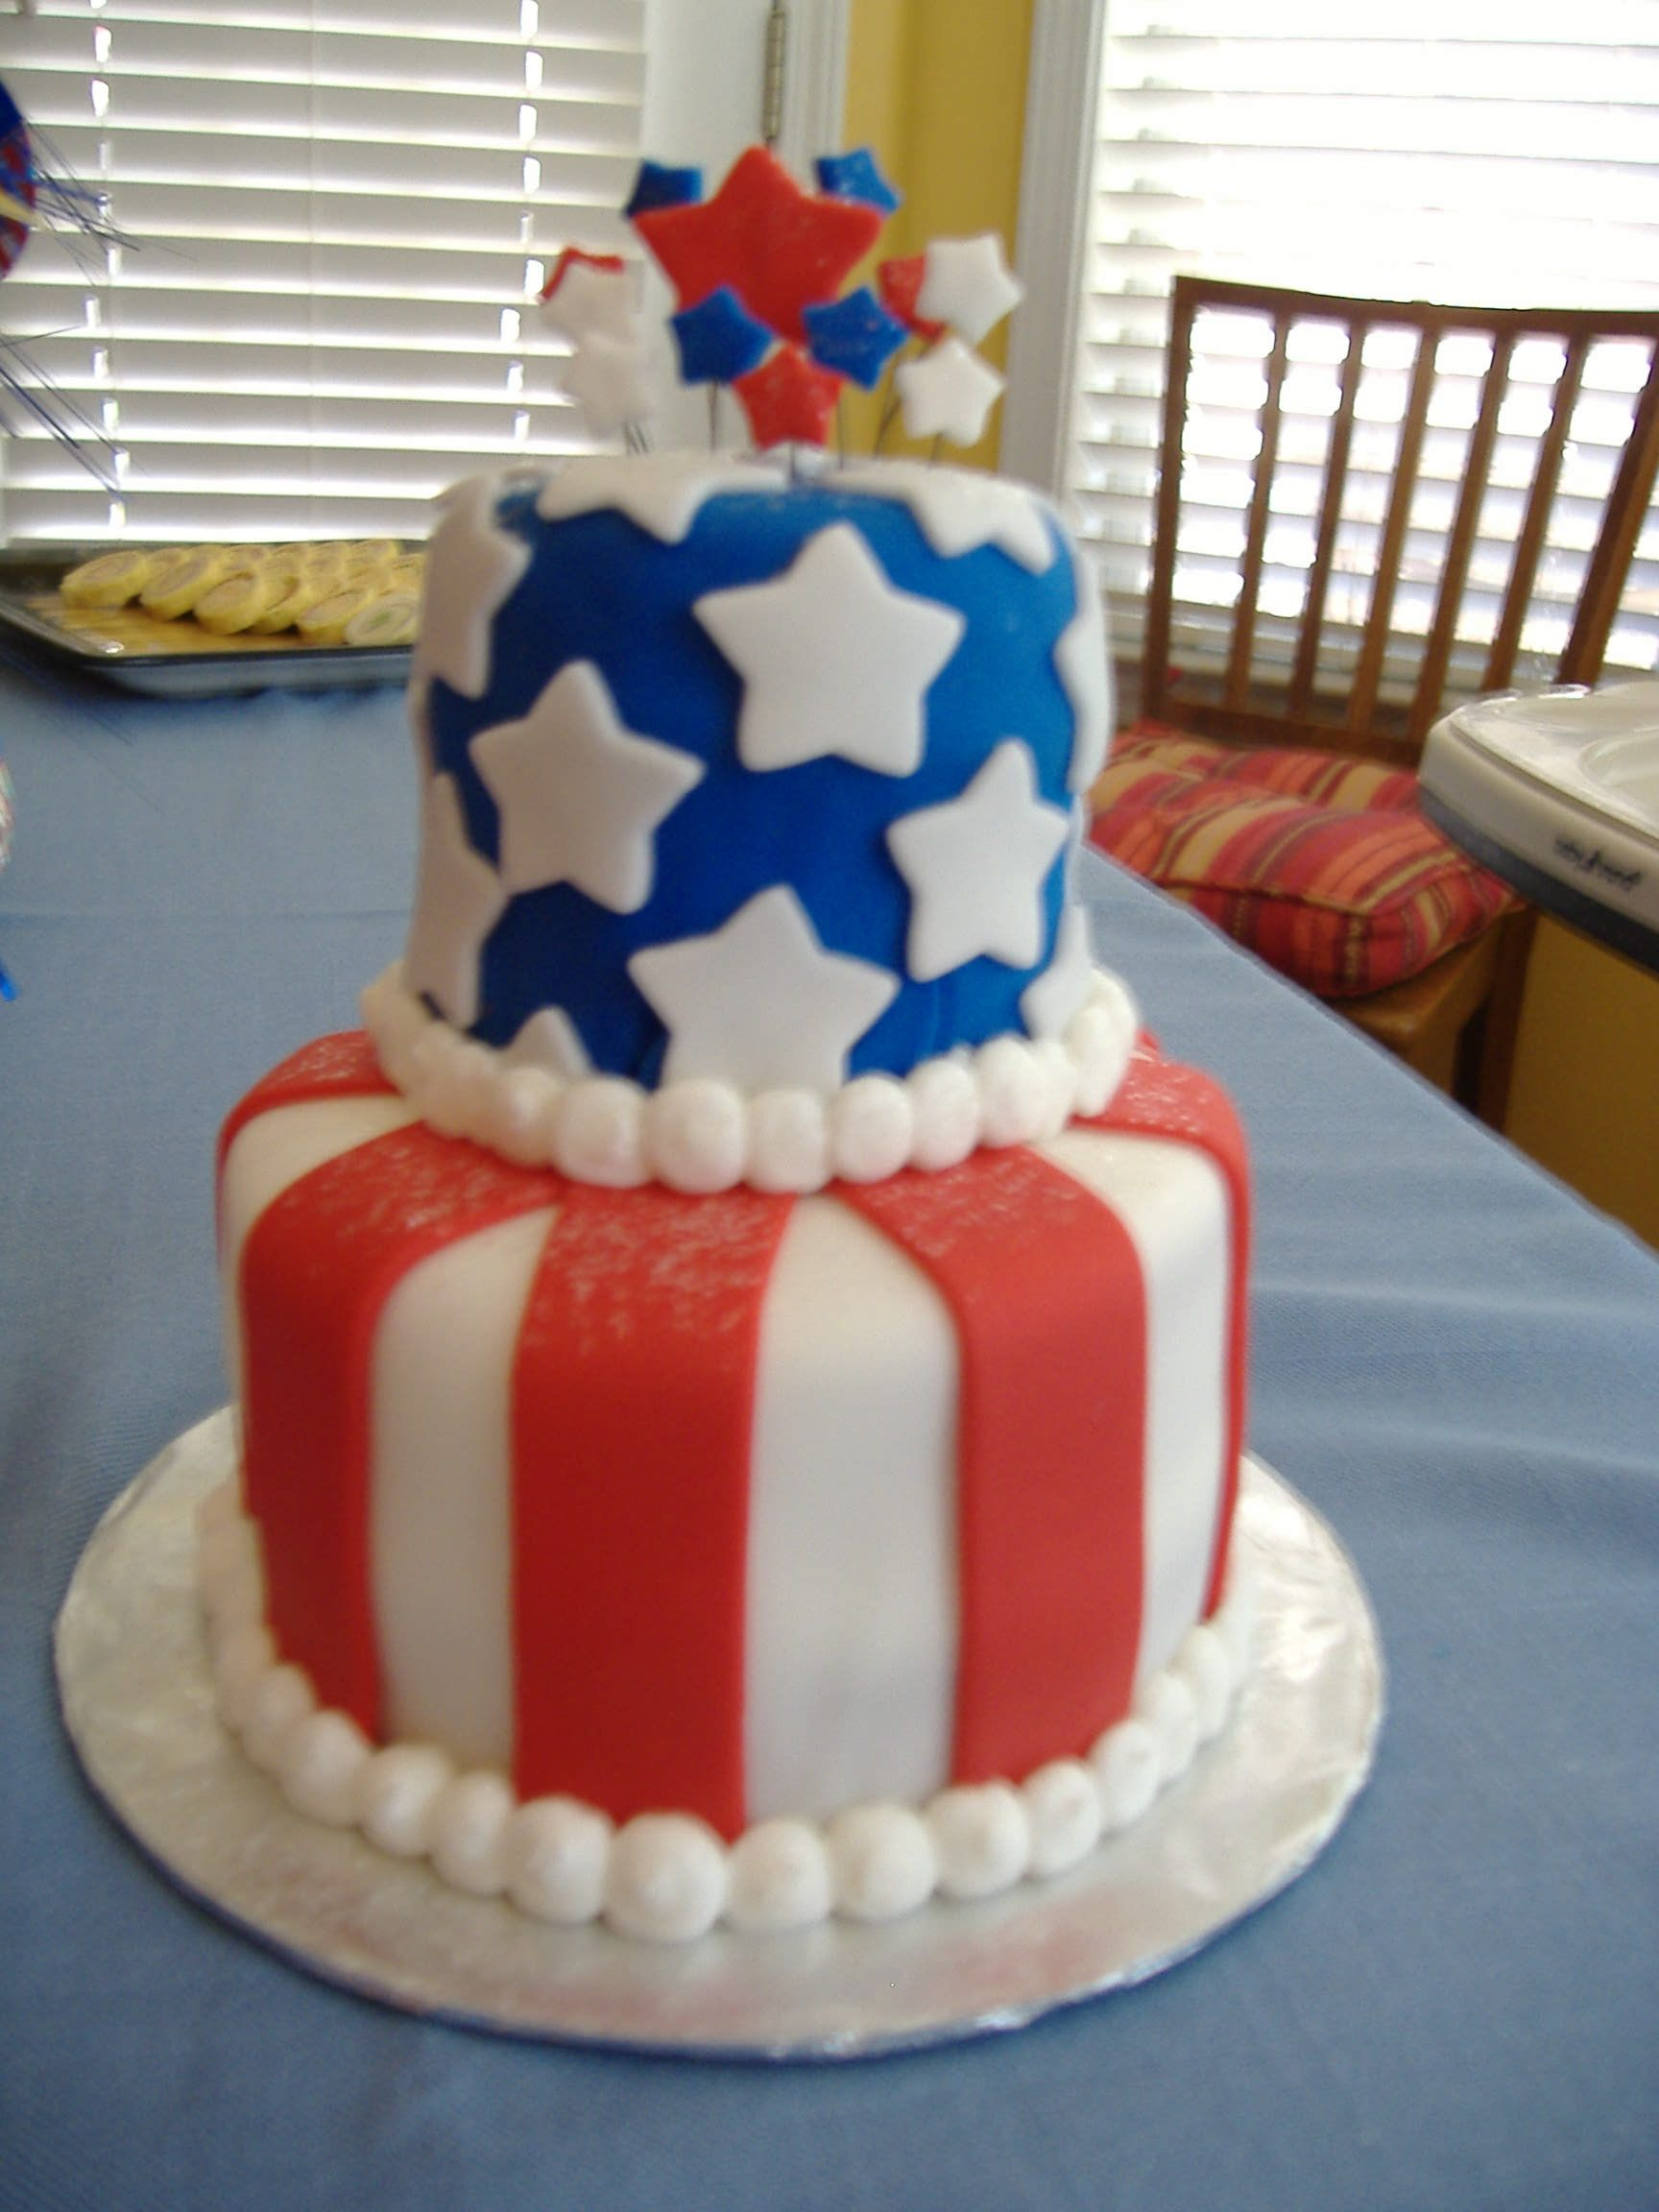 Amazing Red White Blue Party Cake Perfect For For 4Th Of July Mit Funny Birthday Cards Online Inifofree Goldxyz